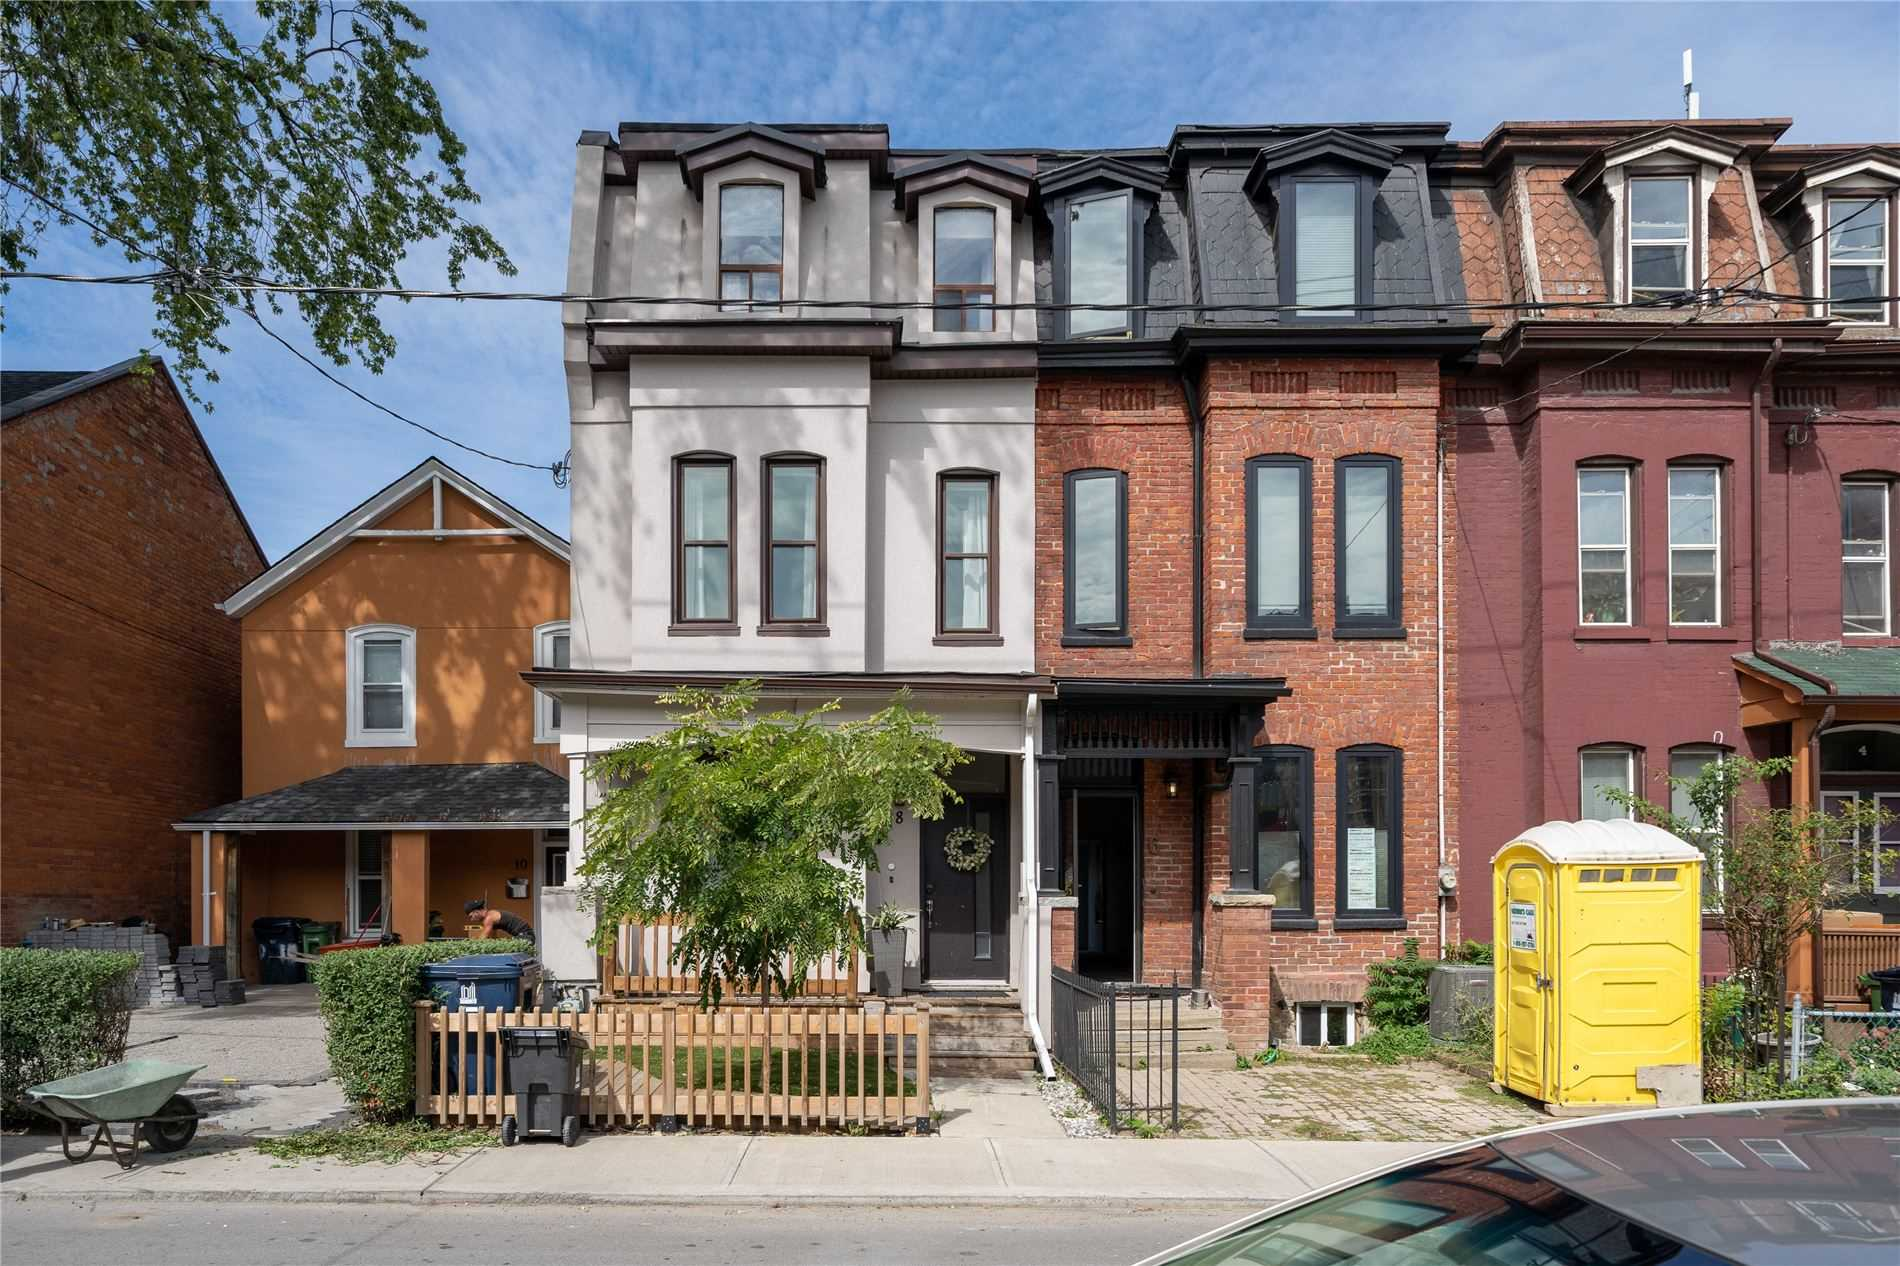 8 D'arcy St, Toronto, Ontario M5T1J7, 4 Bedrooms Bedrooms, 12 Rooms Rooms,3 BathroomsBathrooms,Att/row/twnhouse,For Sale,D'arcy,C5379738